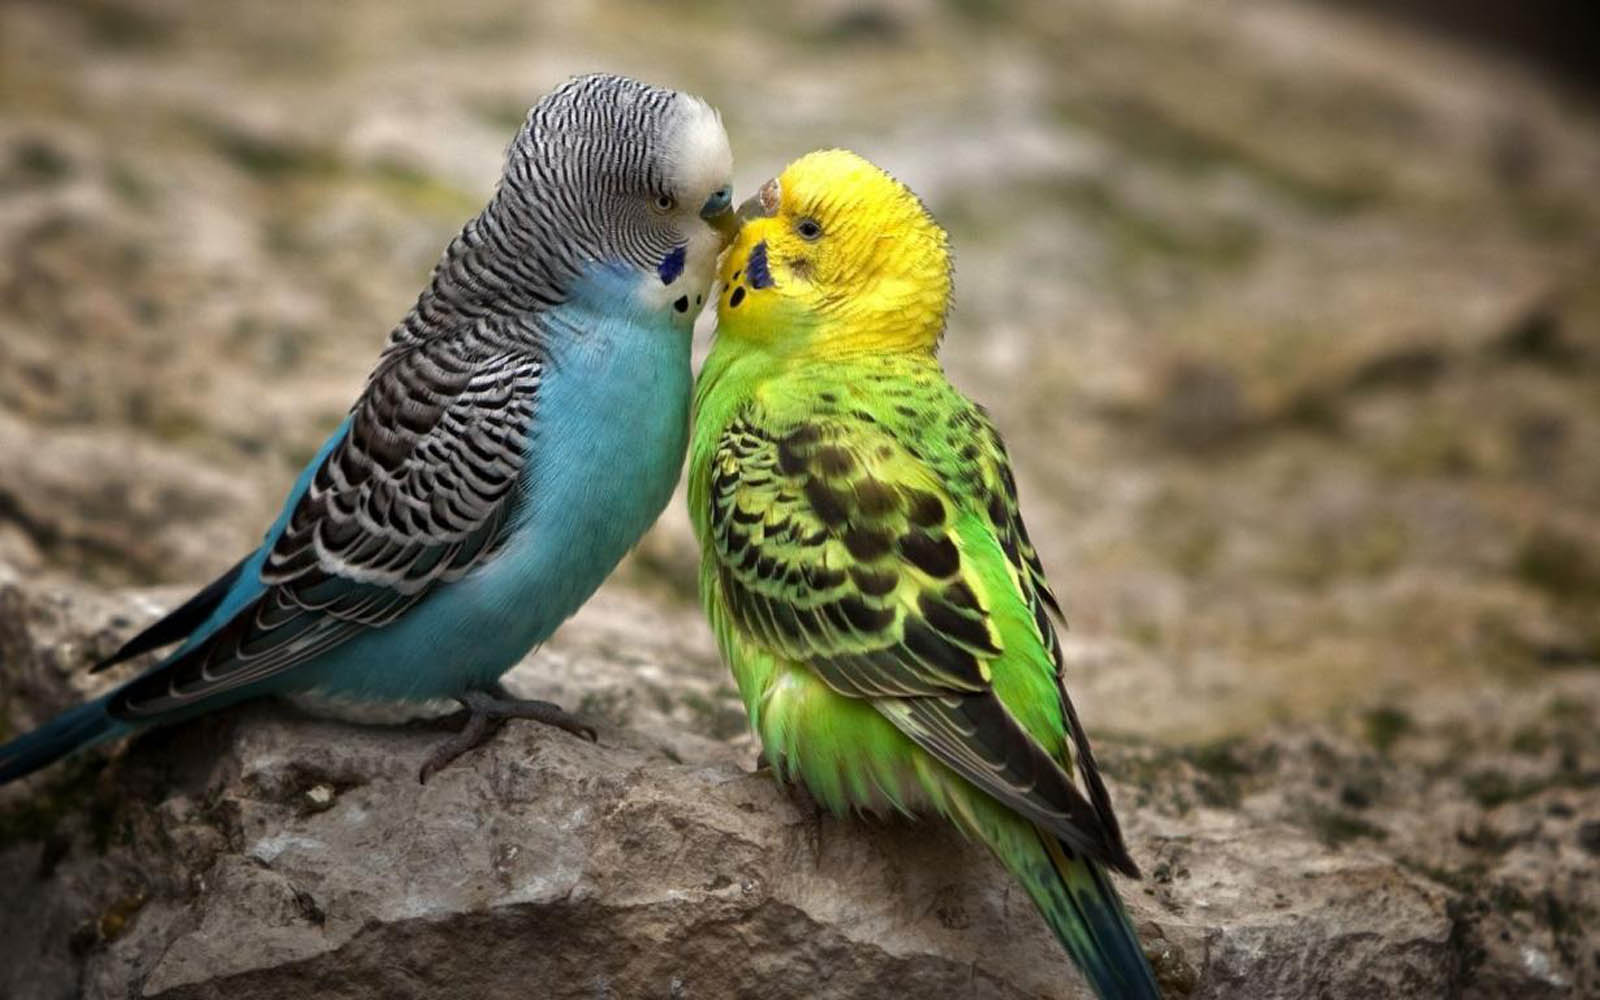 Tag: Love Birds Desktop Wallpapers, Backgrounds, Photos,Images and